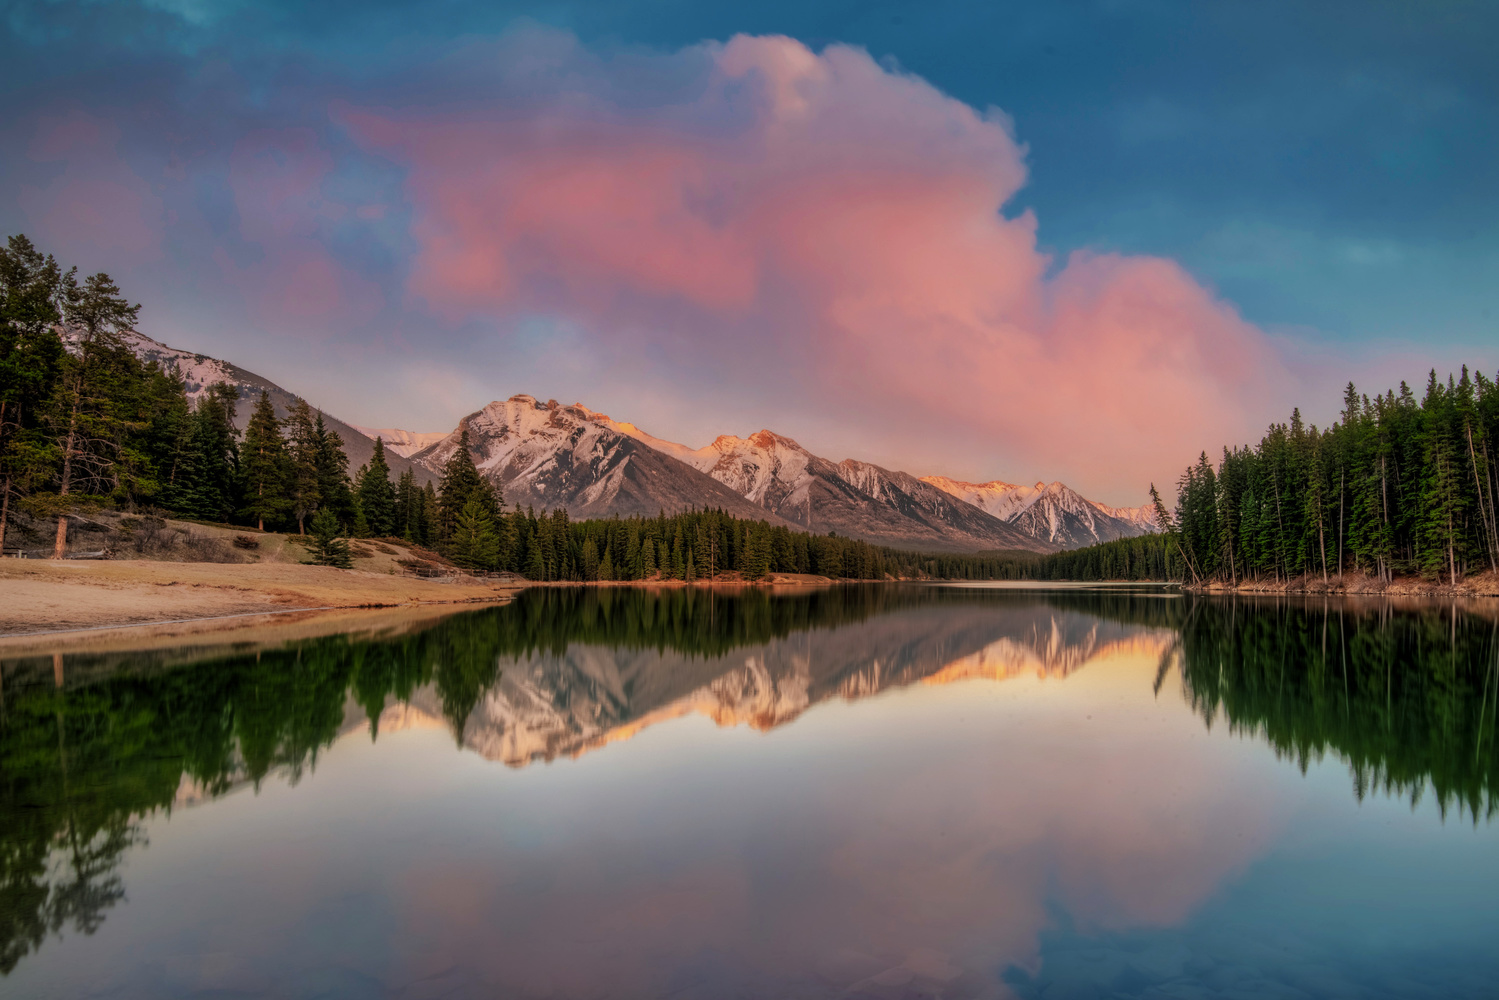 Cotton Candy Sunset by Alex Hill